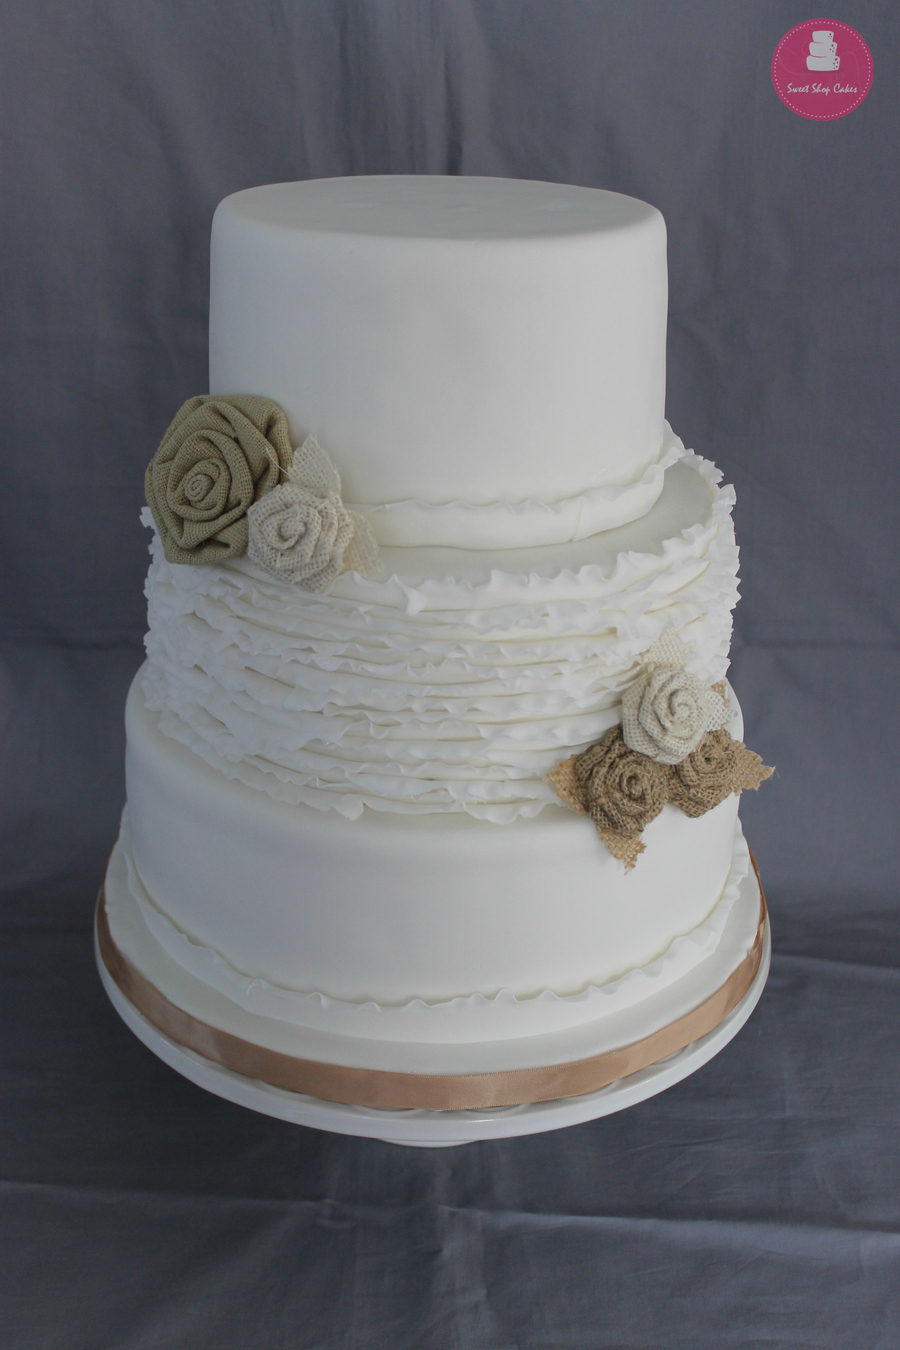 FAwqw6cJ9l-rustic-wedding-cake-and-cupcakes_900.jpg